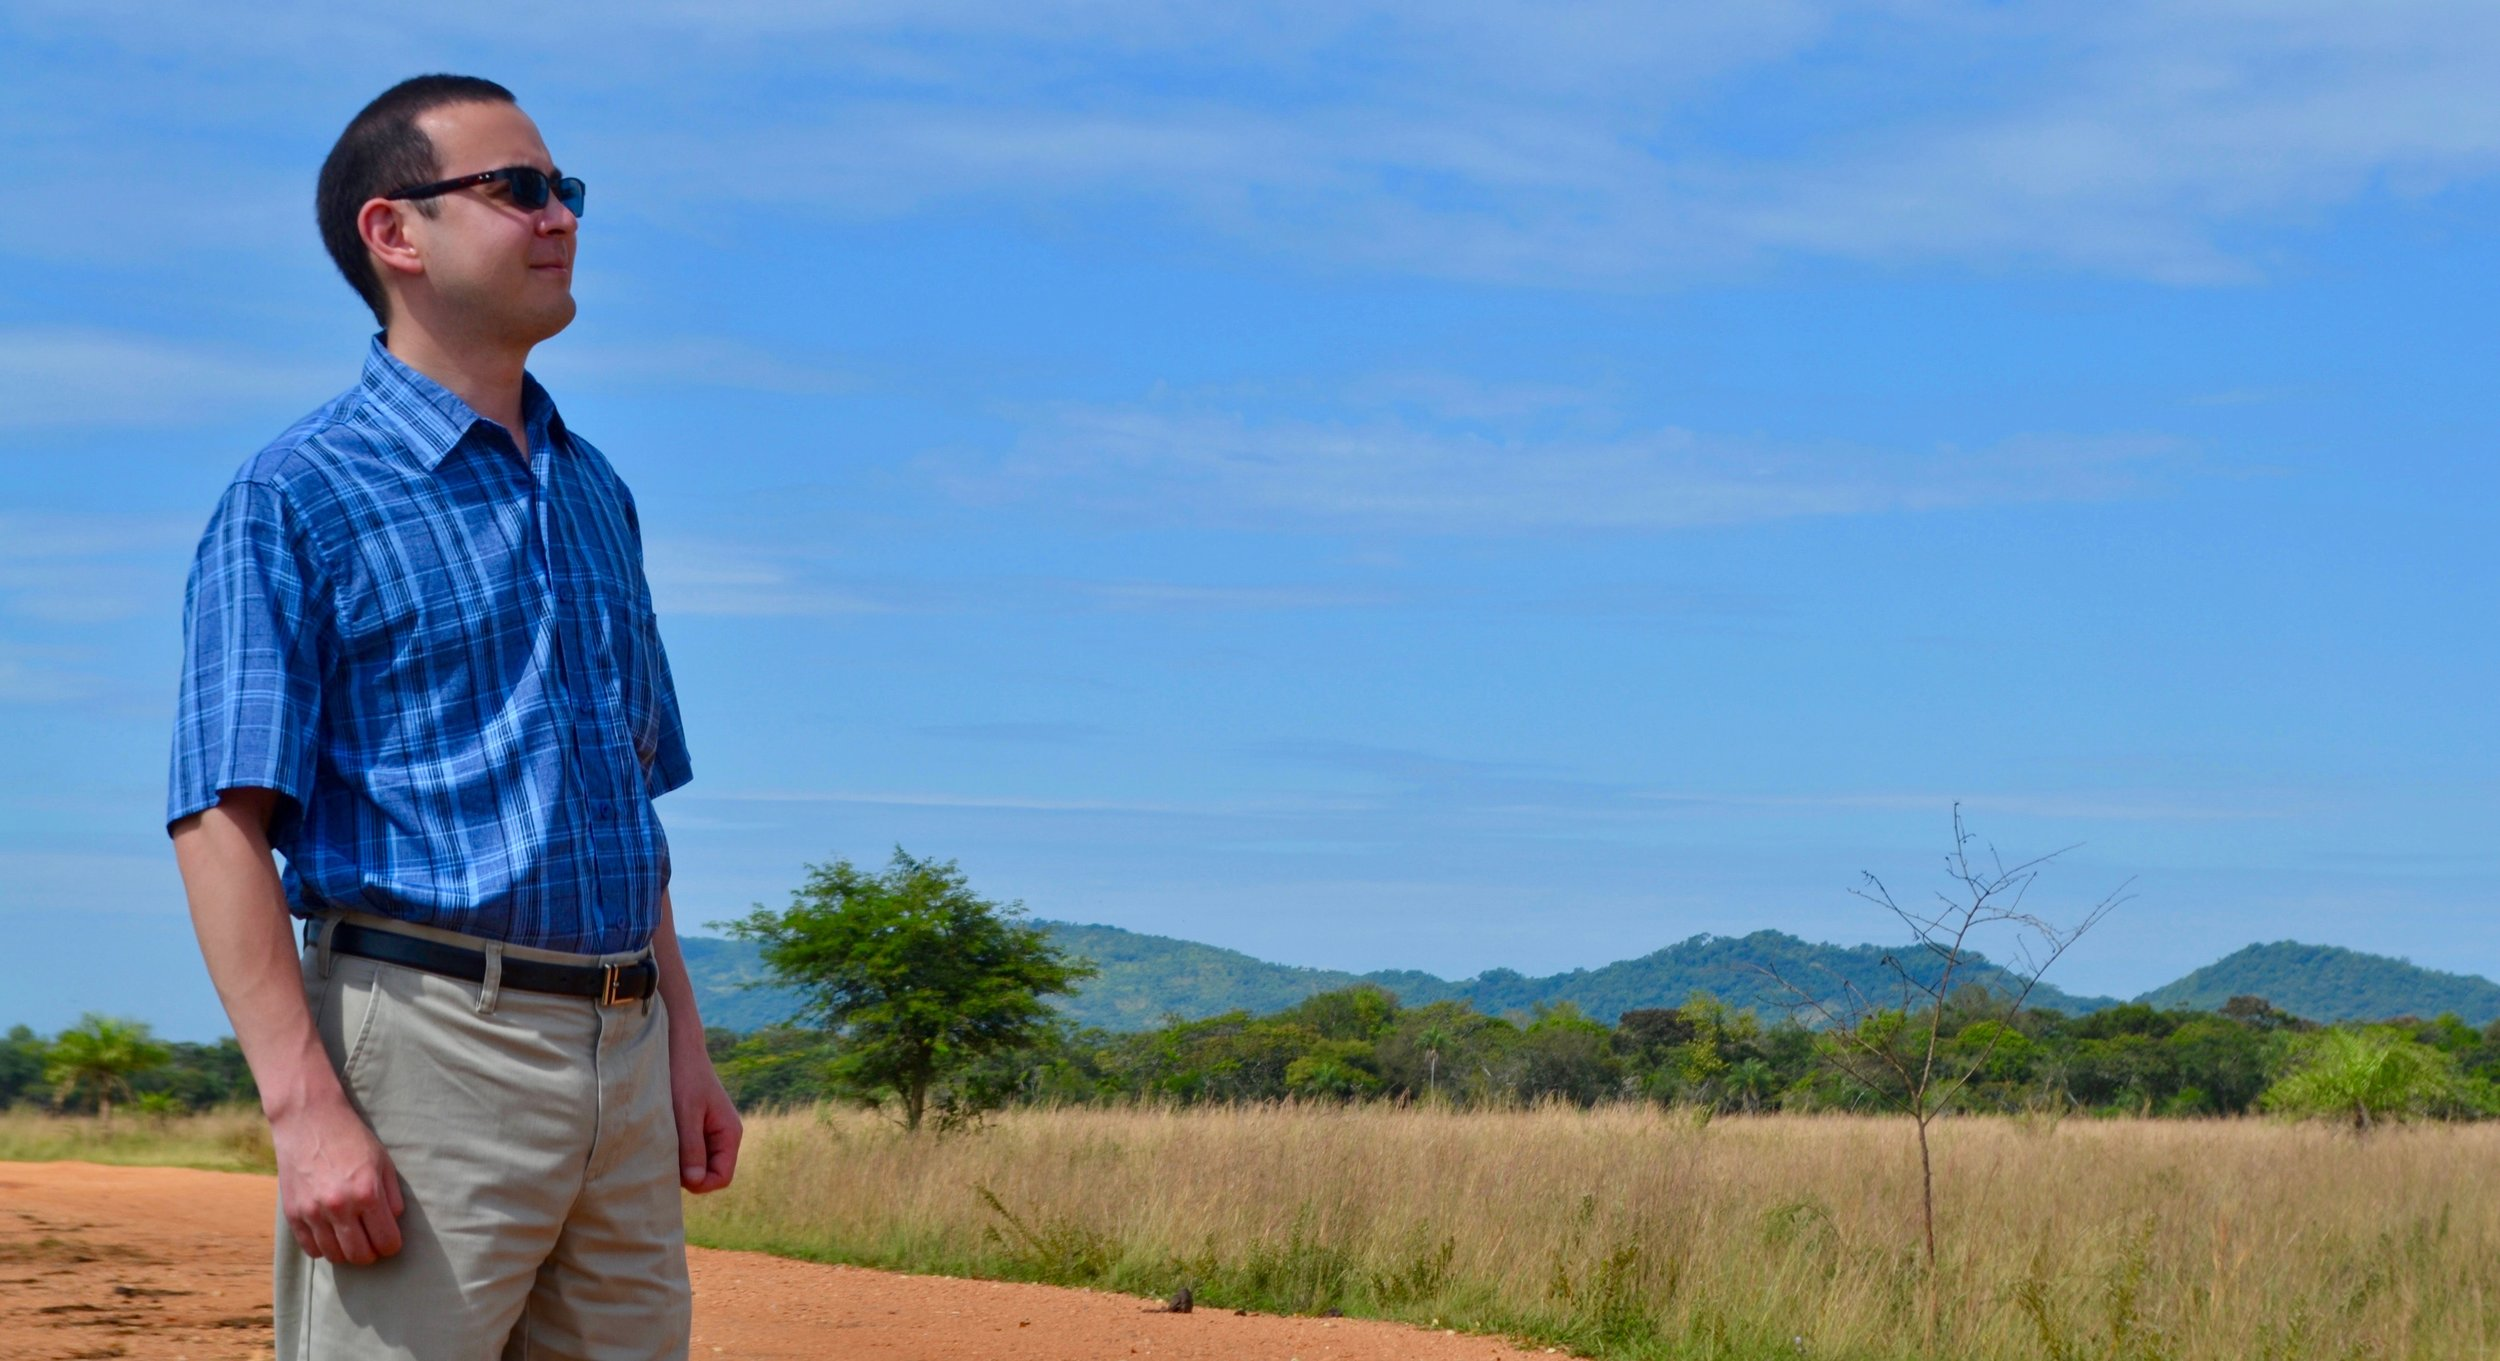 Admiring the beautiful landscape of rural Paraguay